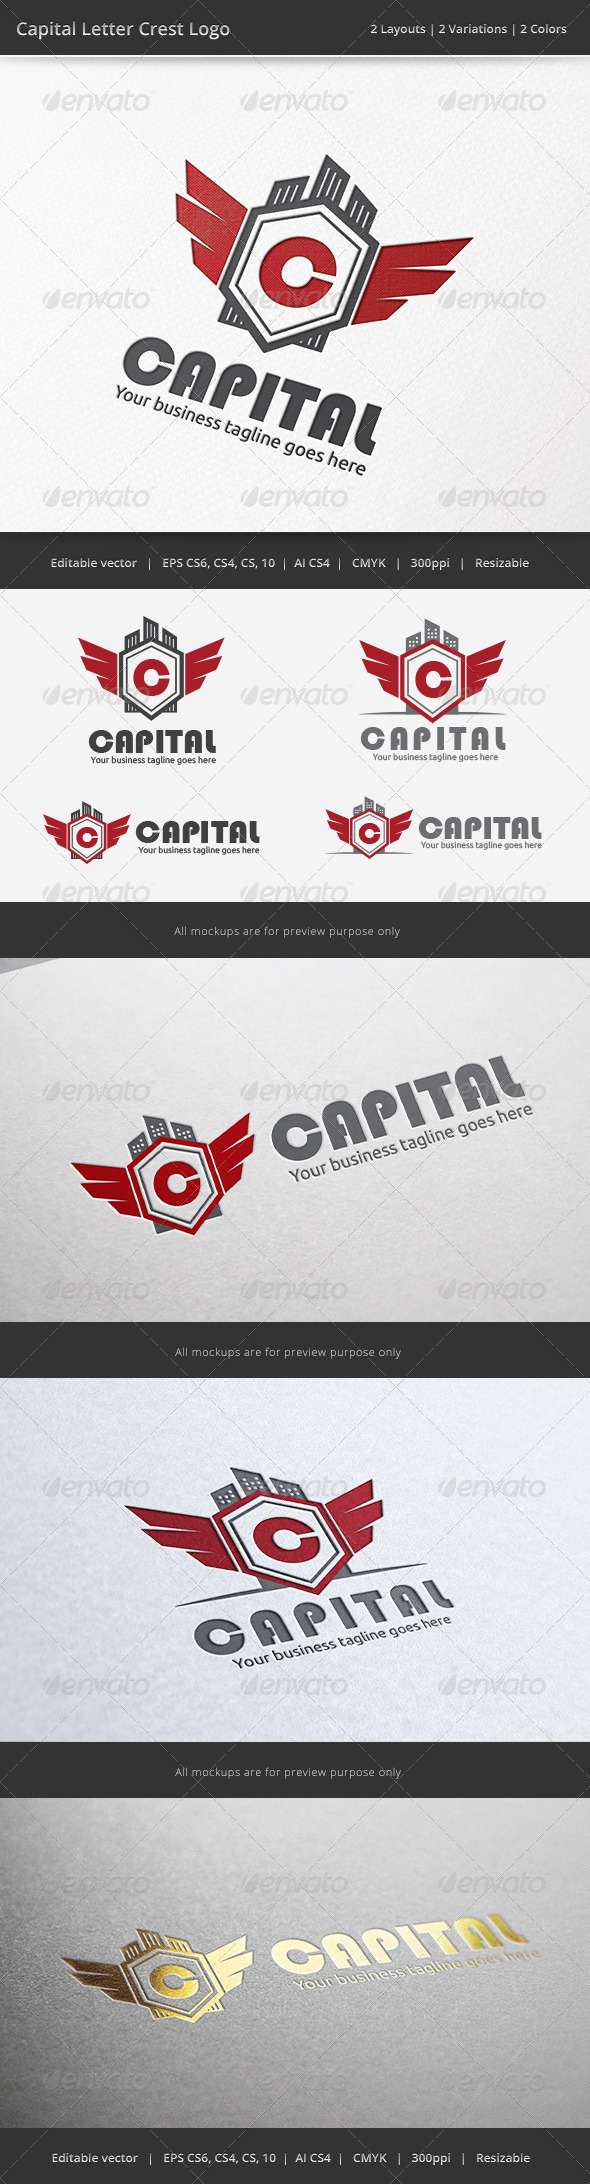 Capital Letter Crest Logo - Crests Logo Templates